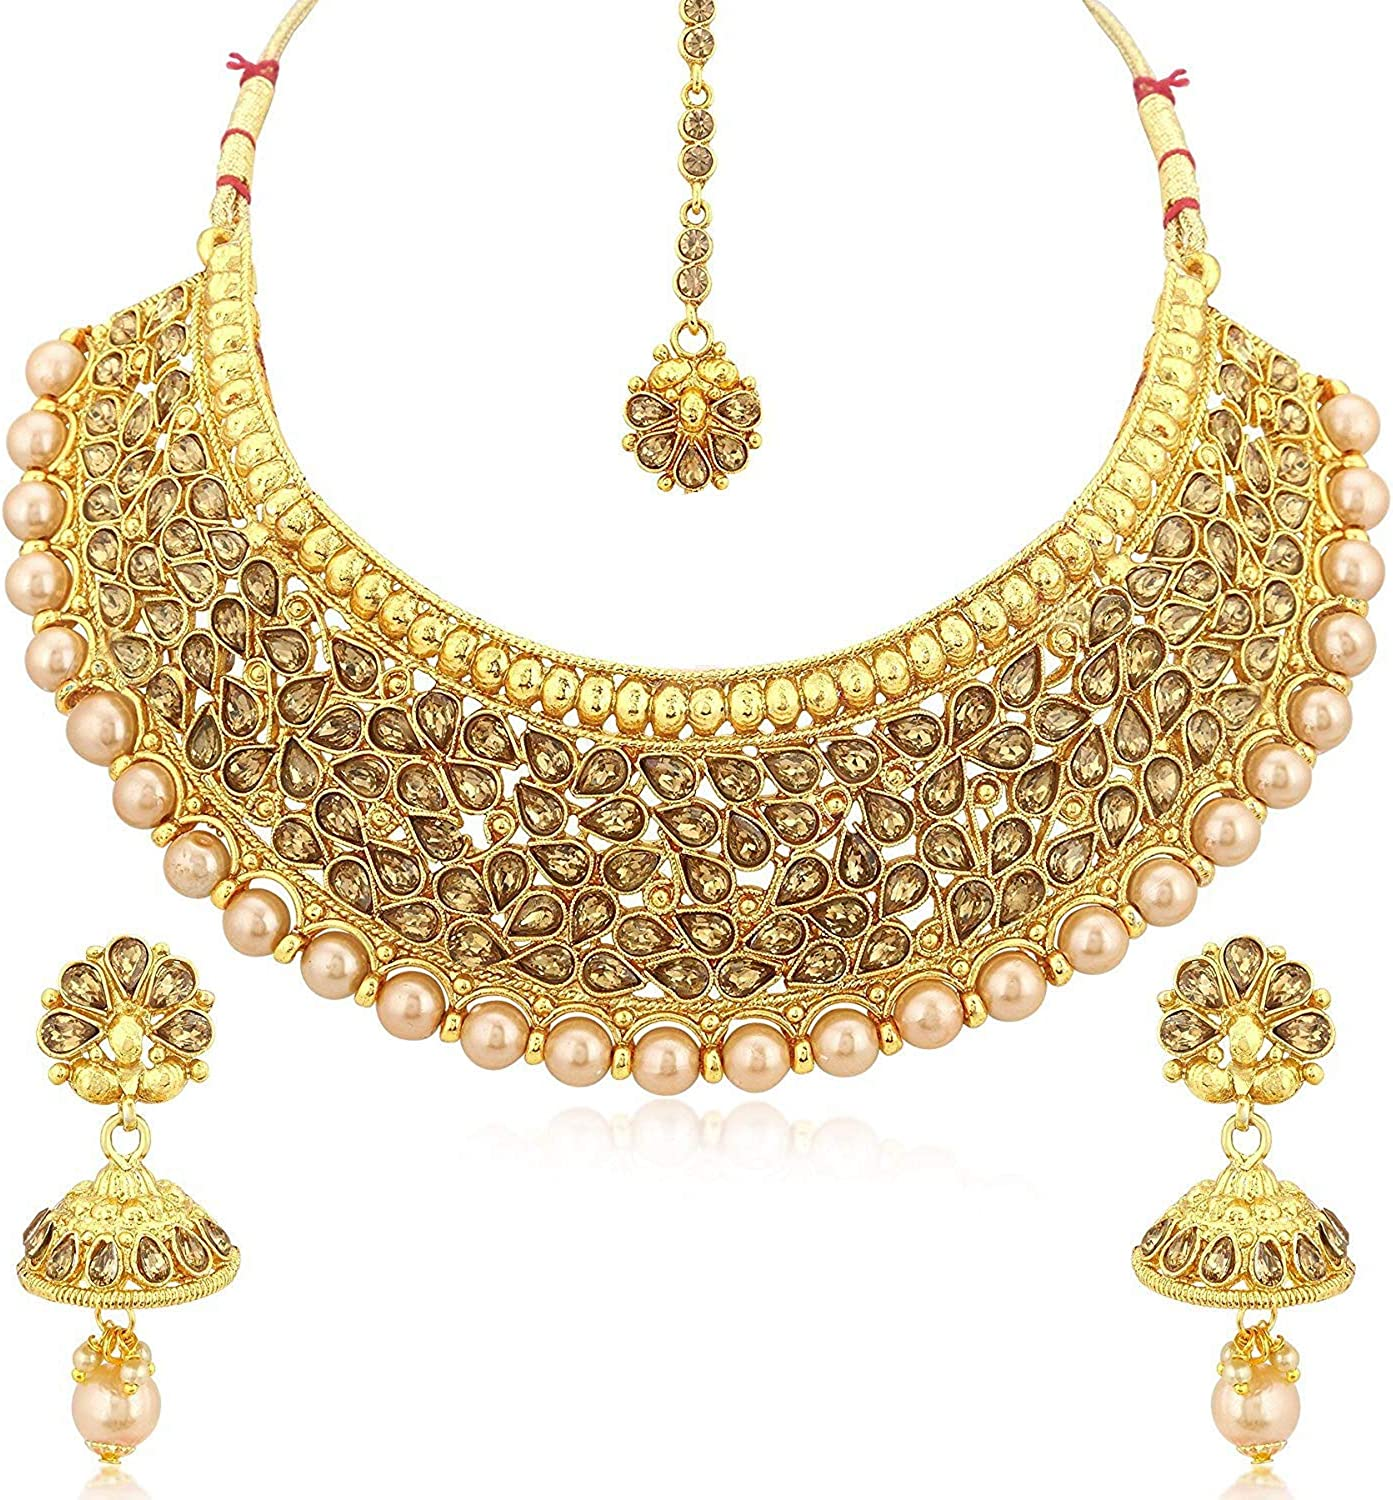 Crunchy Fashion Bollywood Style Gold Tone Traditional Indian Jewelry Necklace Set with Earrings